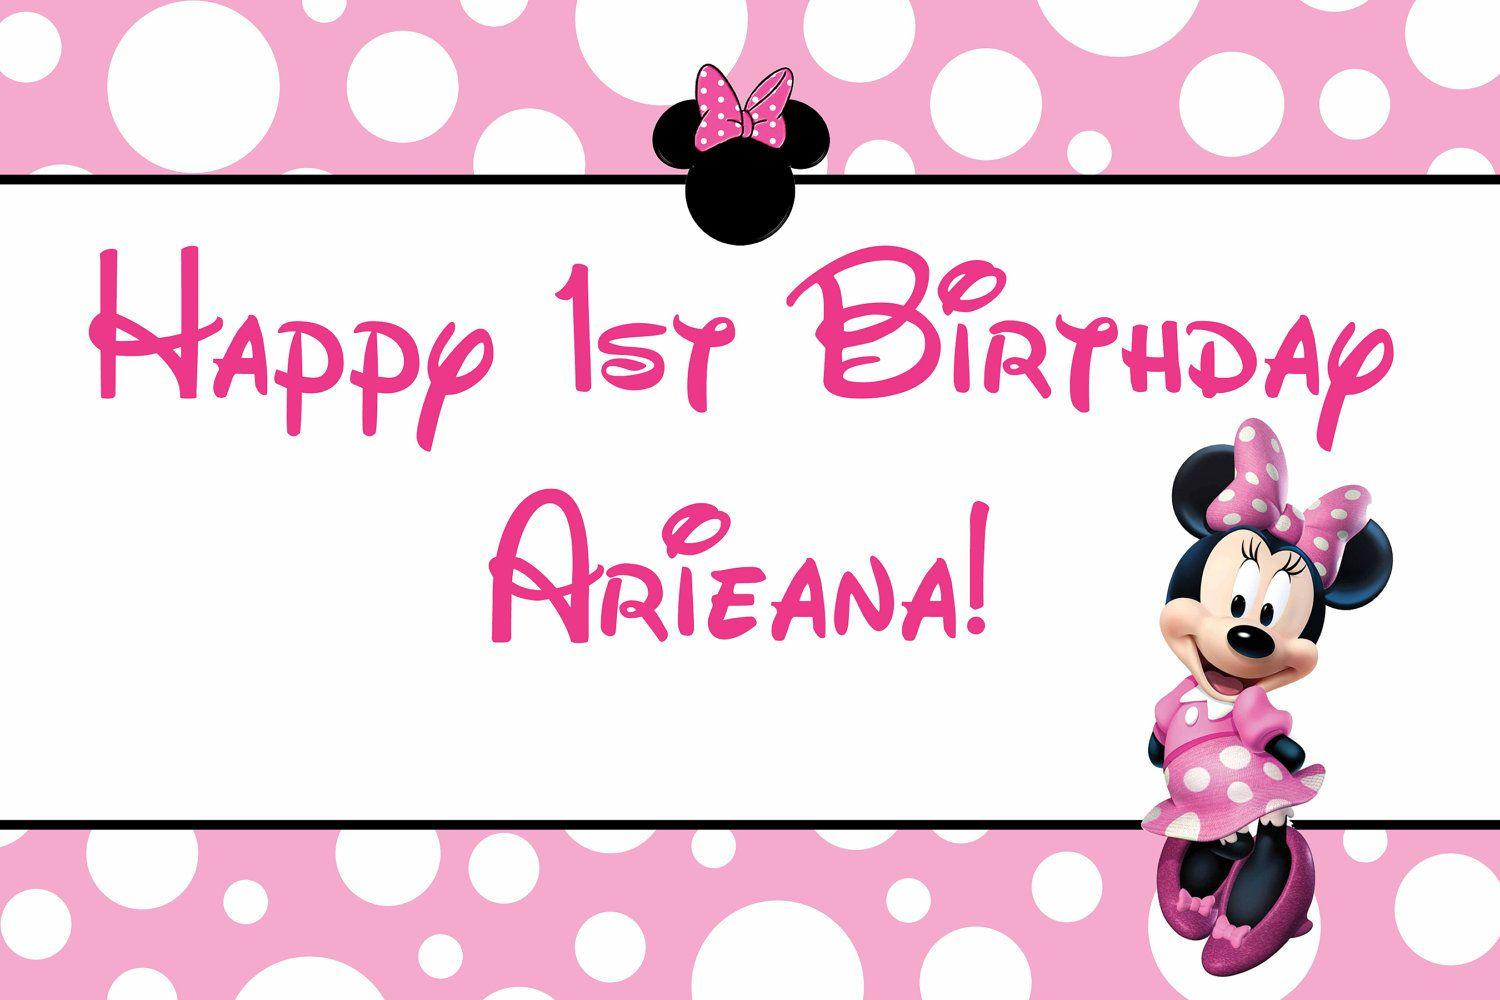 Minnie Mouse Birthday Banner Free Wallpaper Download | woliper.